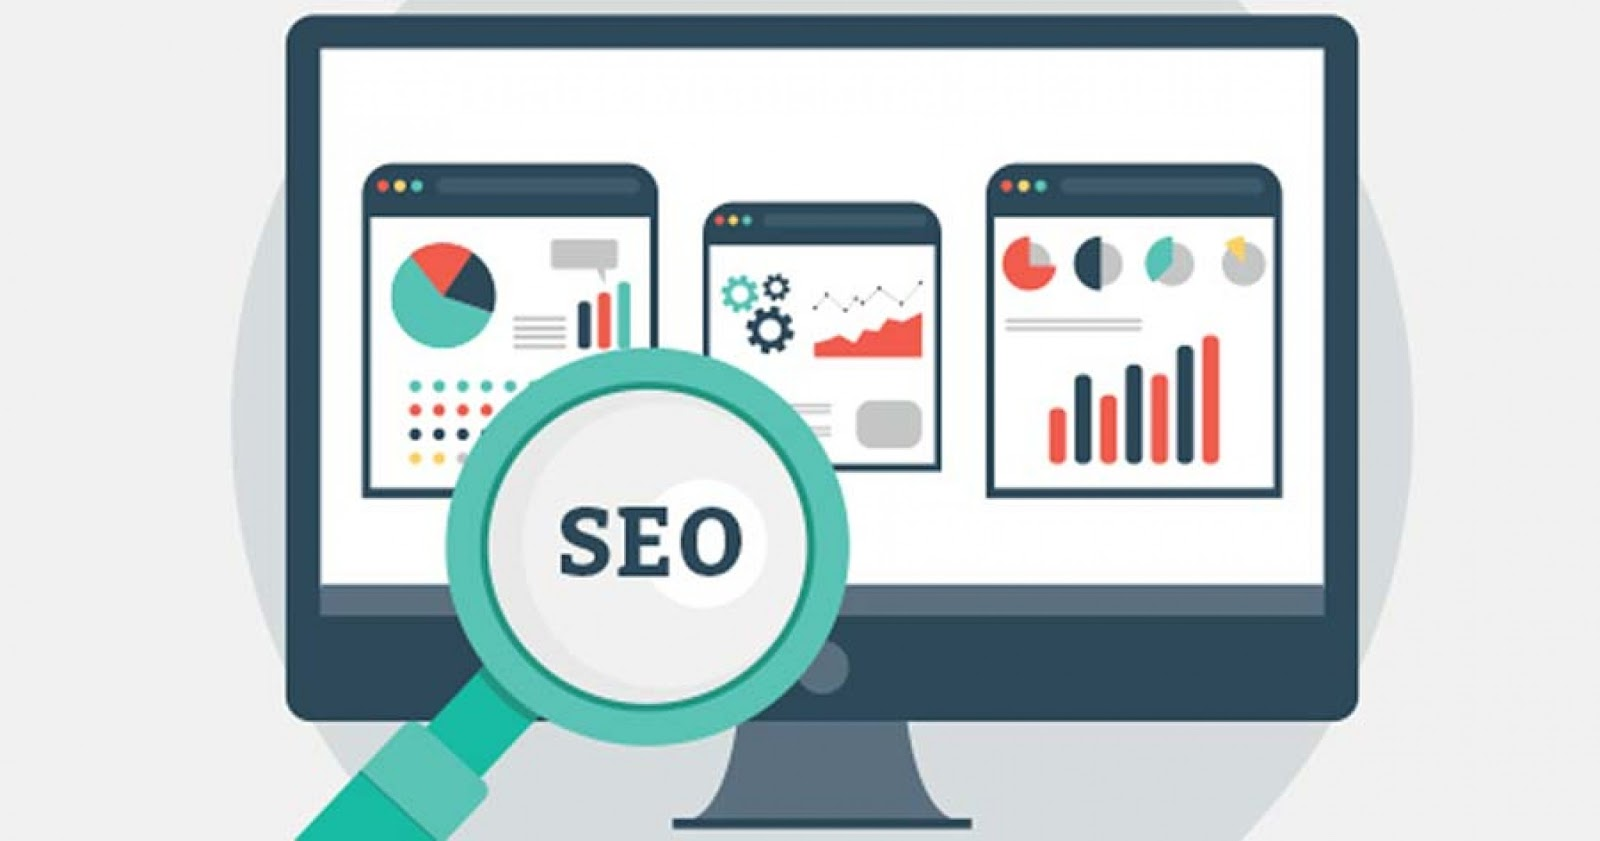 Sáng tạo content trong học seo offpage